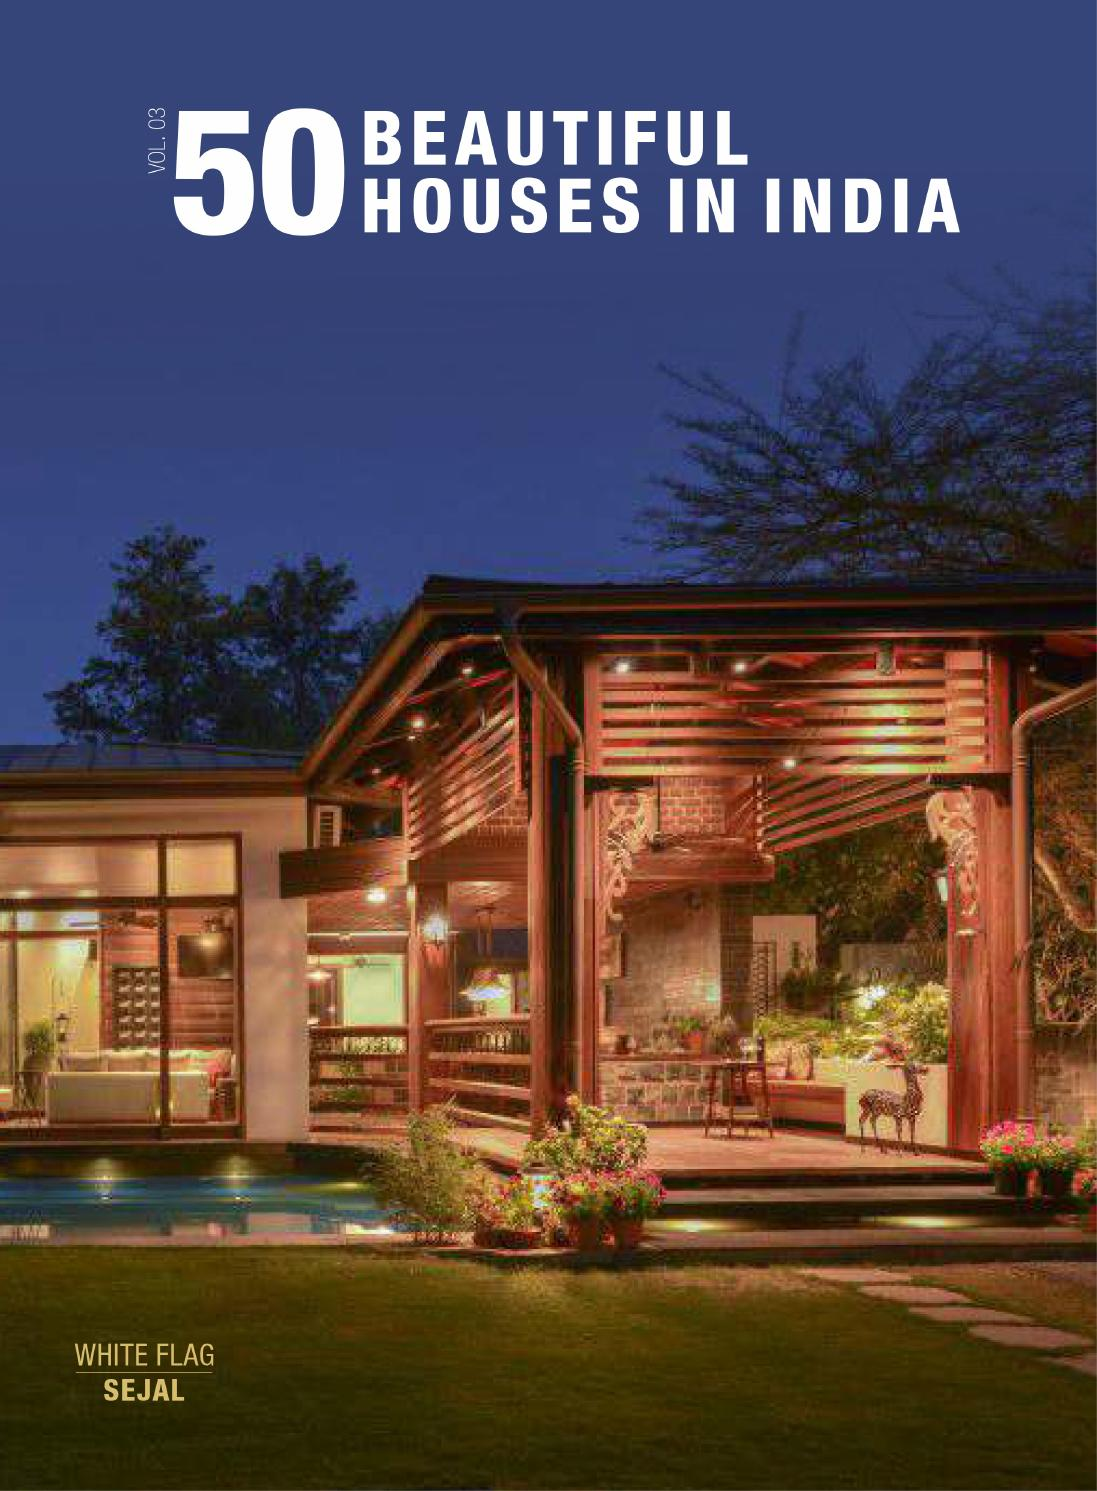 Beautiful Homes Of Instagram: 50 Beautiful Houses In India